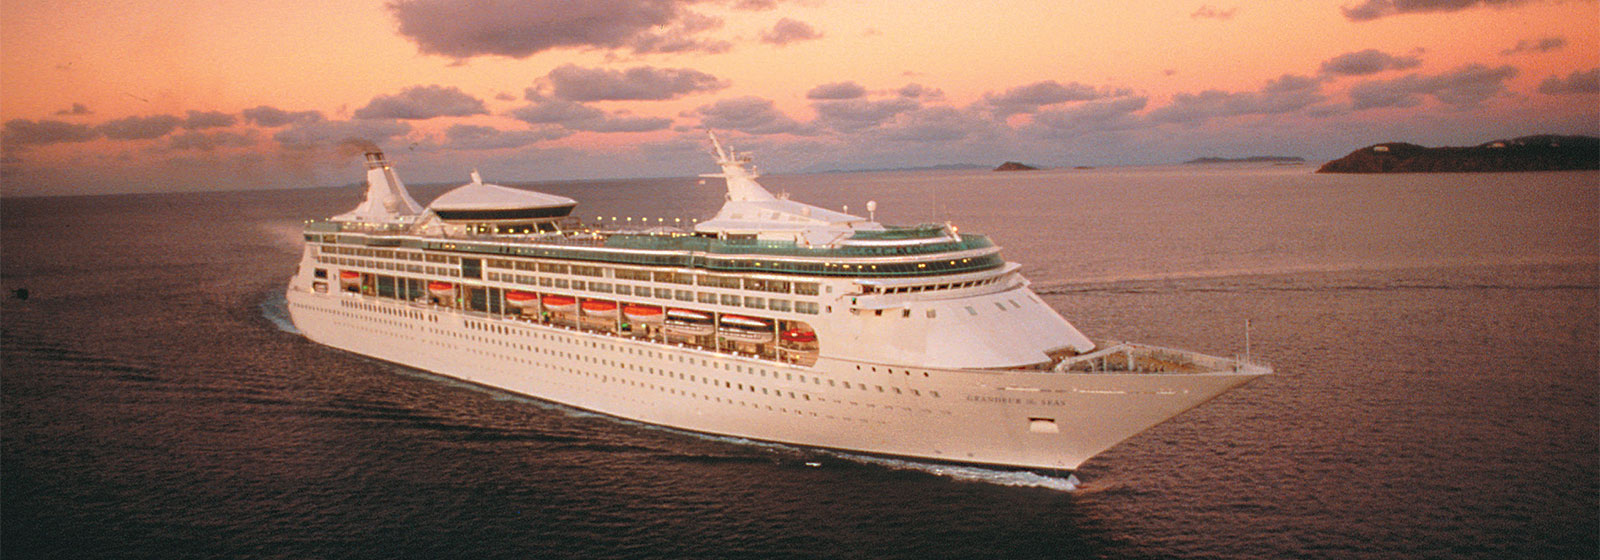 Granduer of the Seas